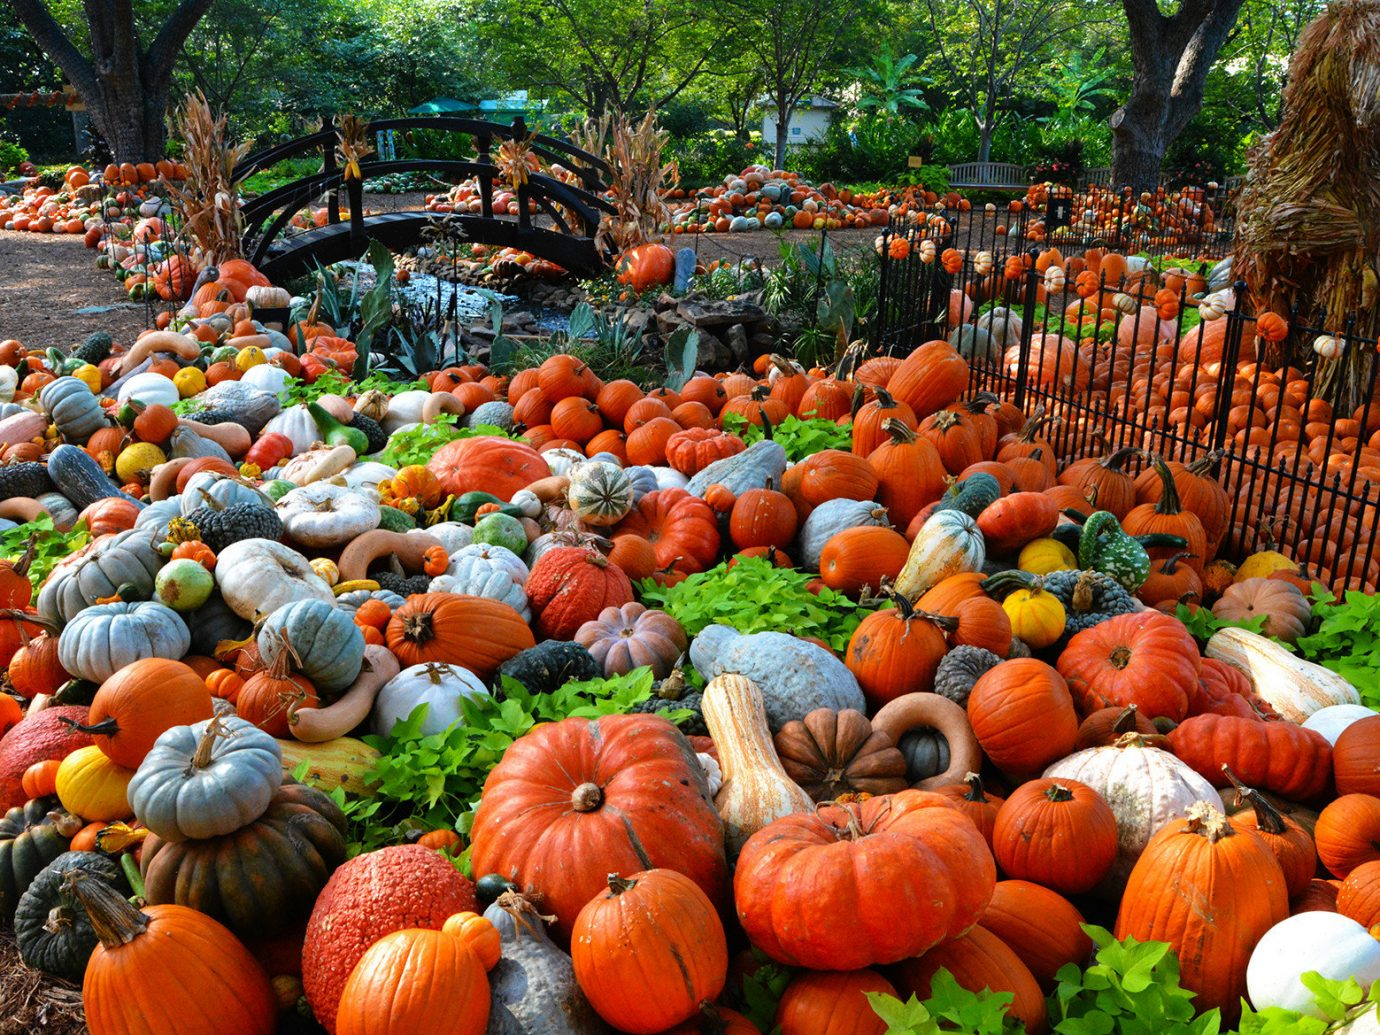 Trip Ideas tree outdoor fruit pumpkin squash calabaza produce winter squash autumn vegetable flower cucurbita gourd lined line arranged sale